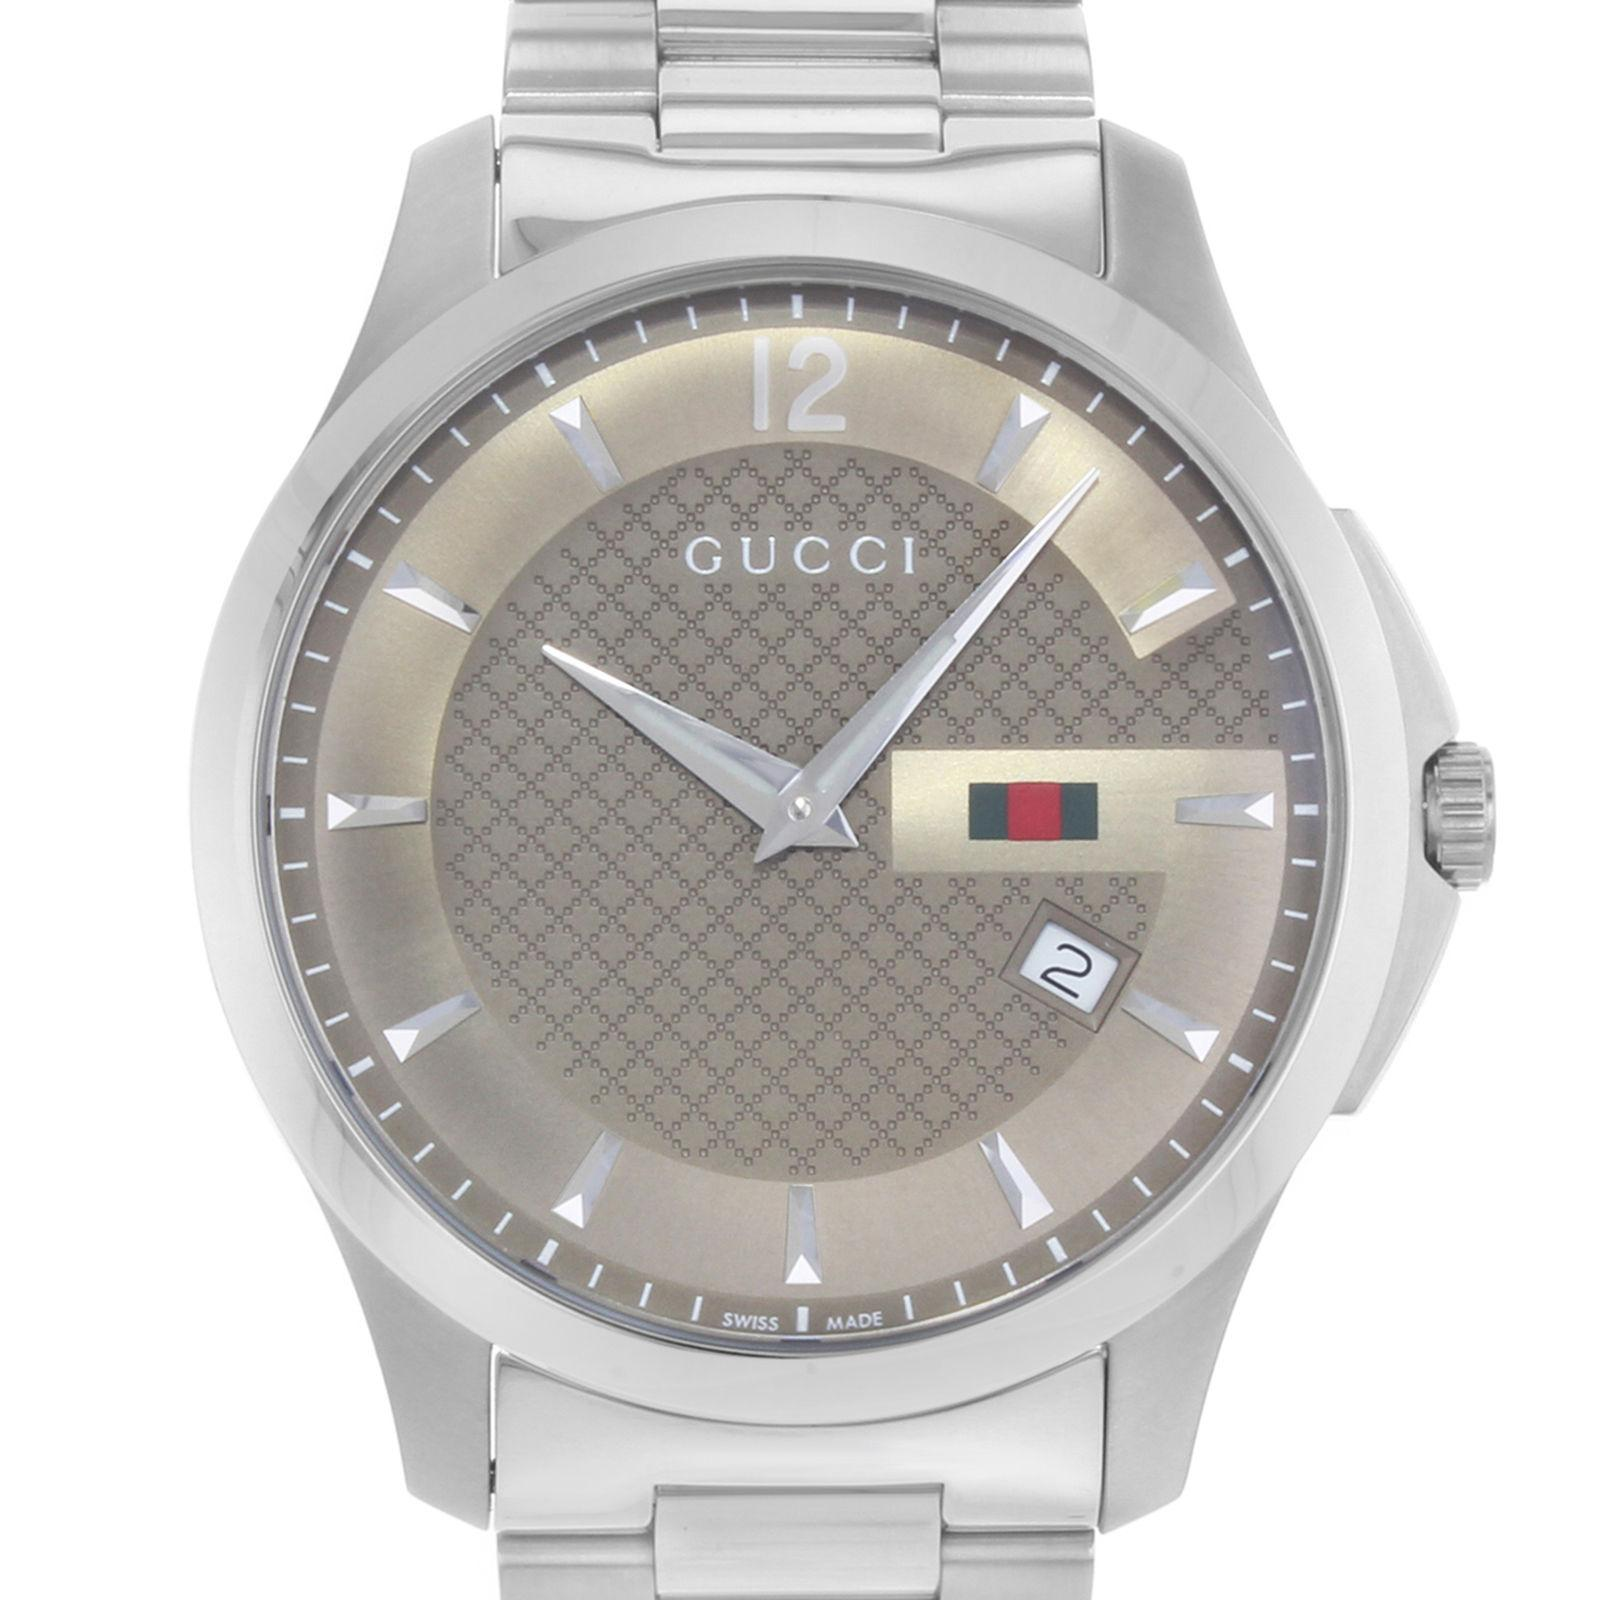 7ad3059cd21 Gucci G-Timeless YA126310 Brown Dial Stainless Steel Quartz Men s Watch For  Sale at 1stdibs